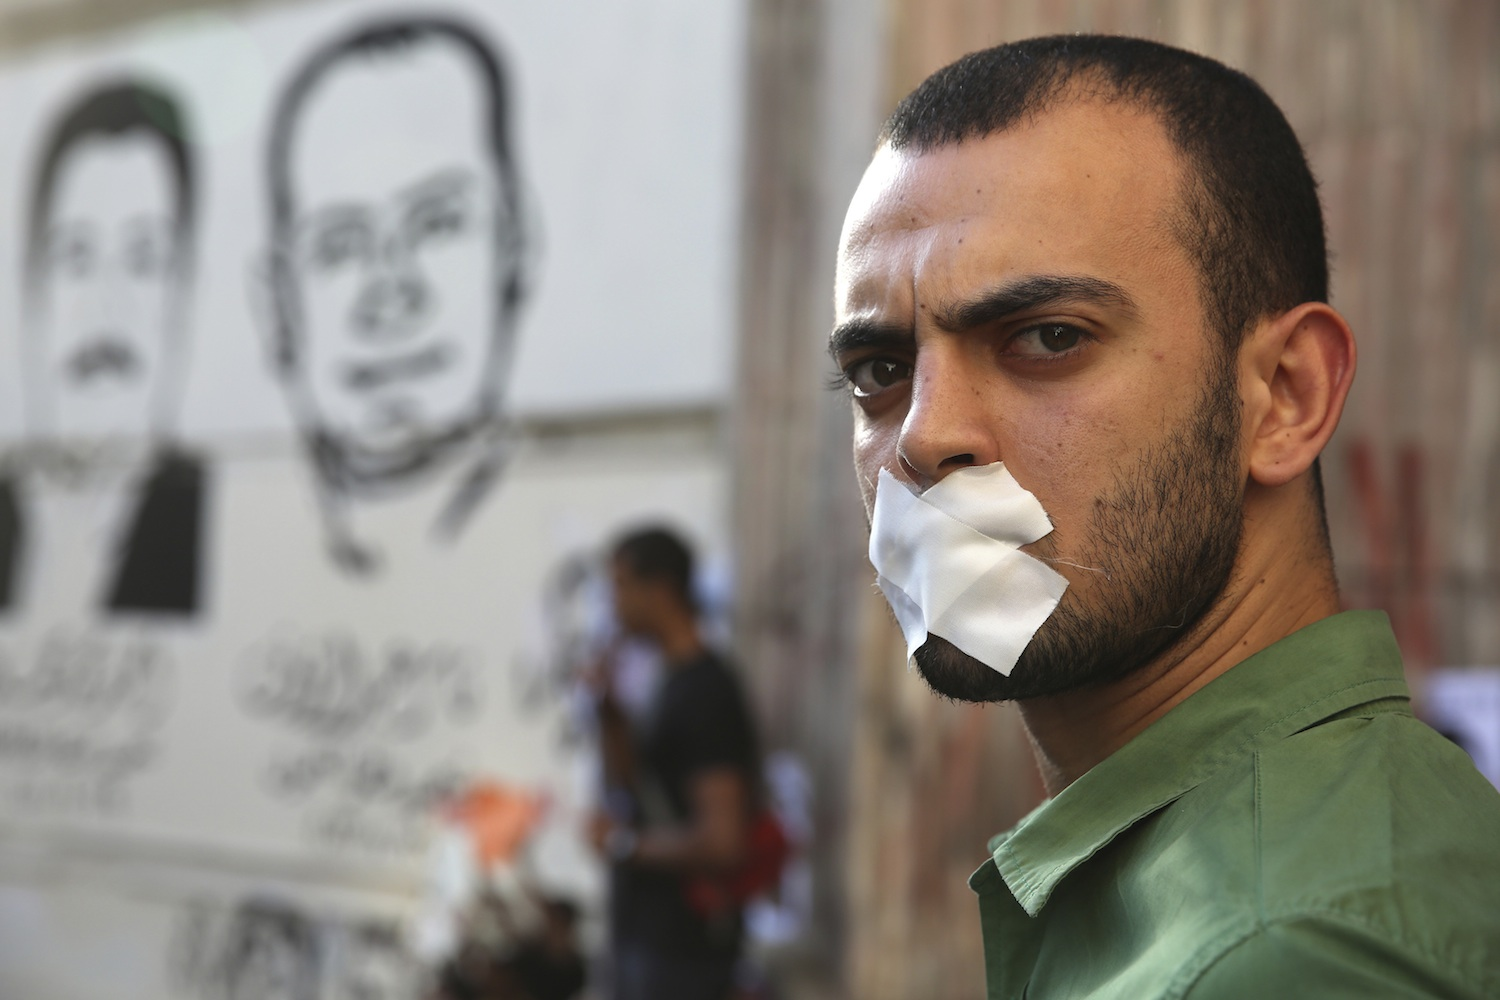 "A protester rallies in support of Al Jazeera journalists Abdullah al-Shami and Mohammed Sultan, who were detained by Egyptian authorities, in front of the Press Syndicate in Cairo, June 1, 2014. According to Al Jazeera's website, the two journalists have been in detention since August last year for providing information to the Muslim Brotherhood. The government has declared the Brotherhood a ""terrorist group"". The Brotherhood says it is a peaceful organisation. REUTERS/Mohamed Abd El Ghany (EGYPT - Tags: POLITICS CIVIL UNREST) - RTR3RQ5B"